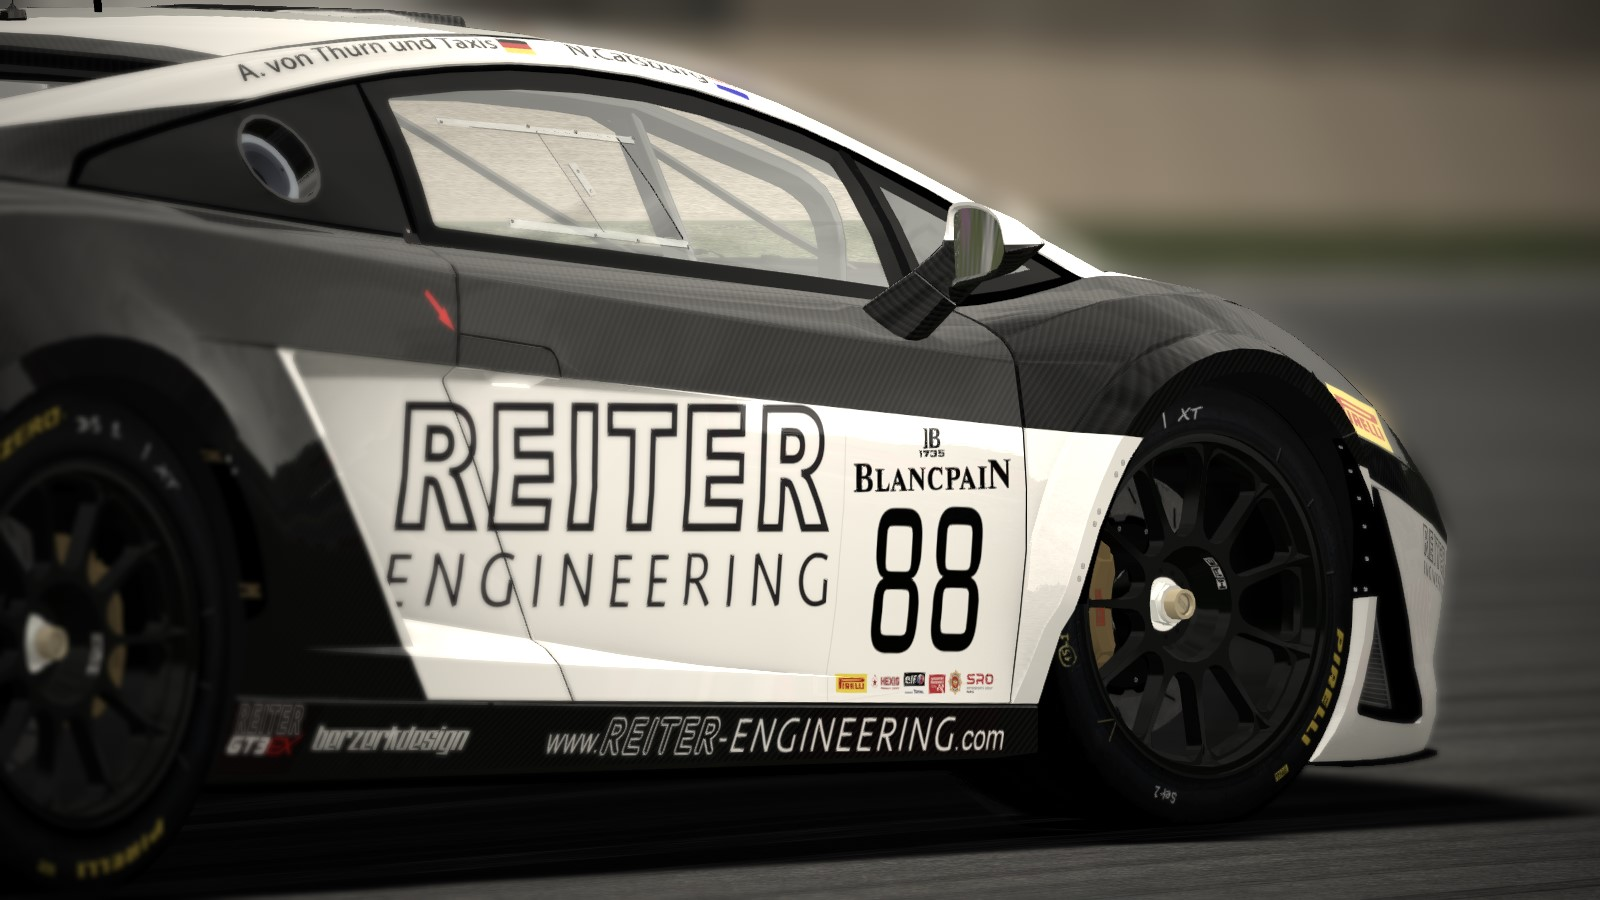 Screenshot_lamborghini_gallardo_gt3_brands-hatch_18-4-115-13-33-42.jpg